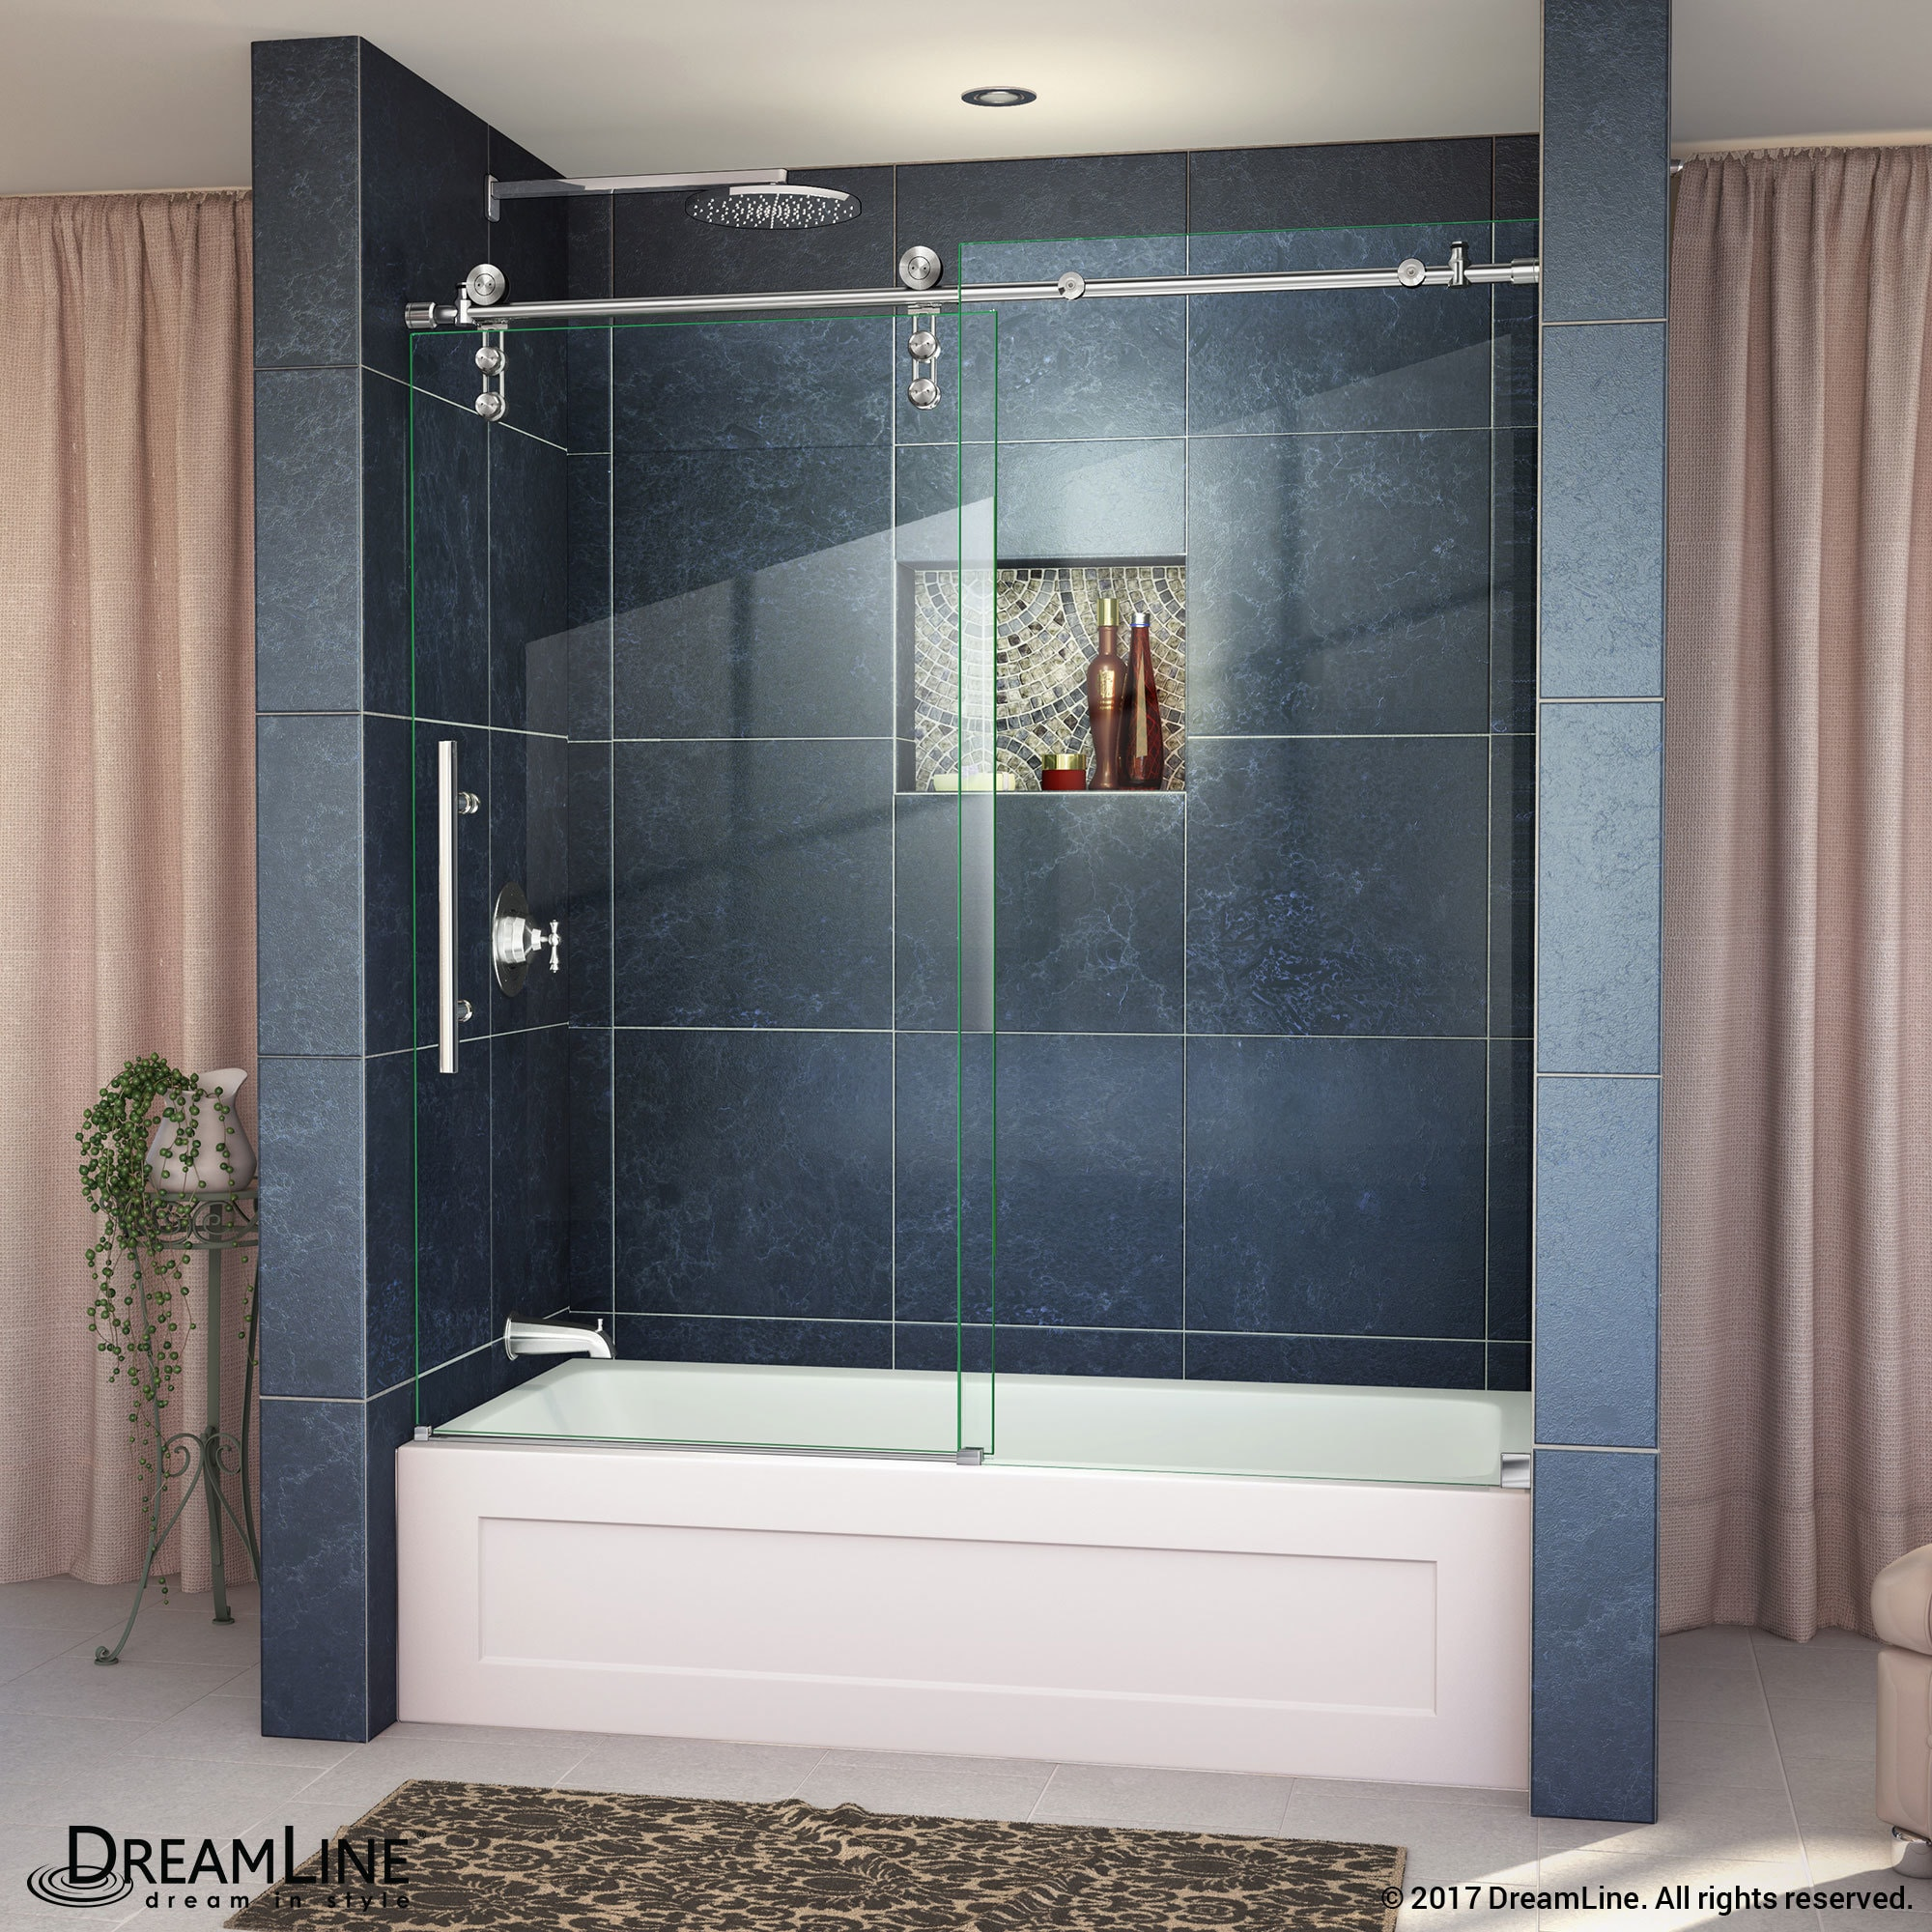 x detail doors oil shower sliding rubbed frameless door air dreamline enigma w finish bronze shdr p roller h